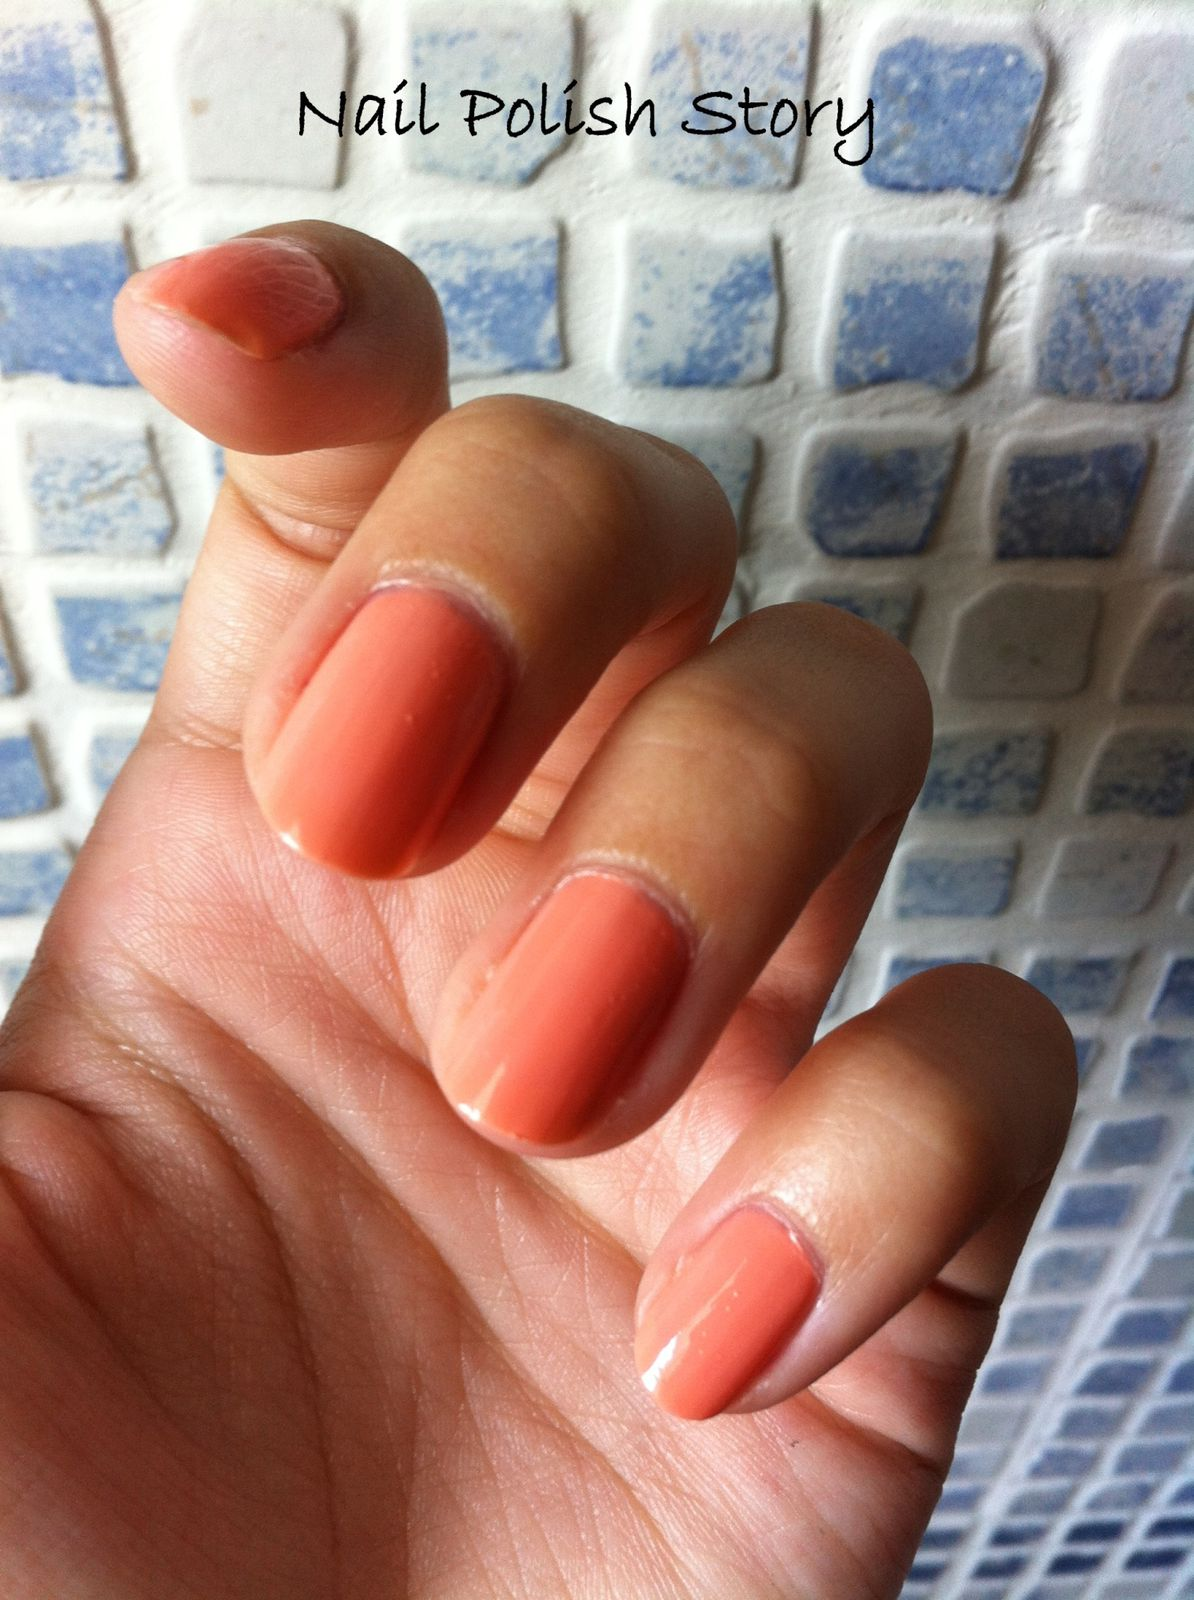 Dorothy et Peach #PicturePolish